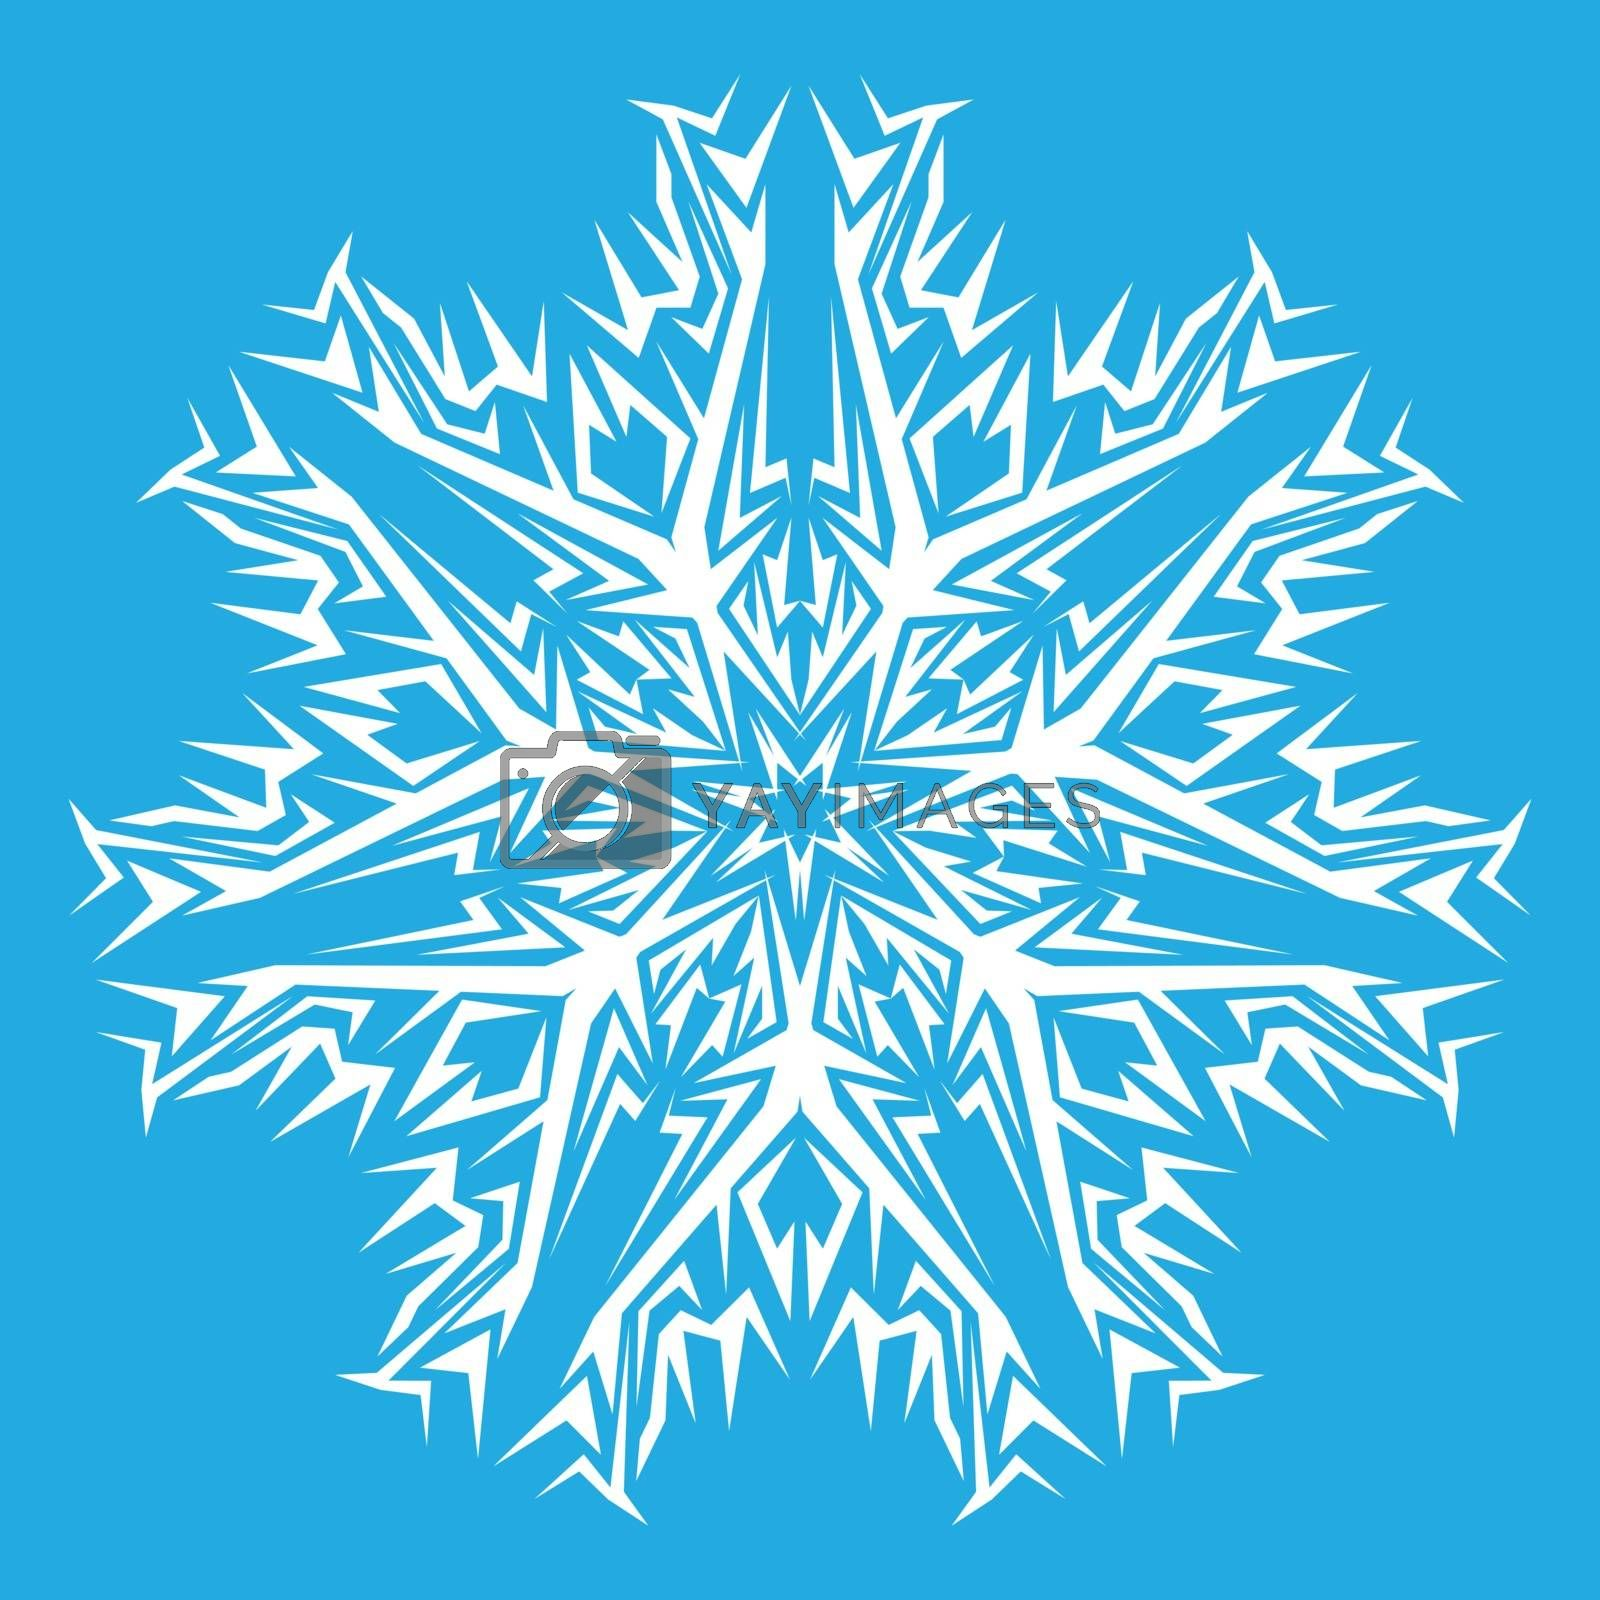 Vector decorative white snowflakes on a blue background